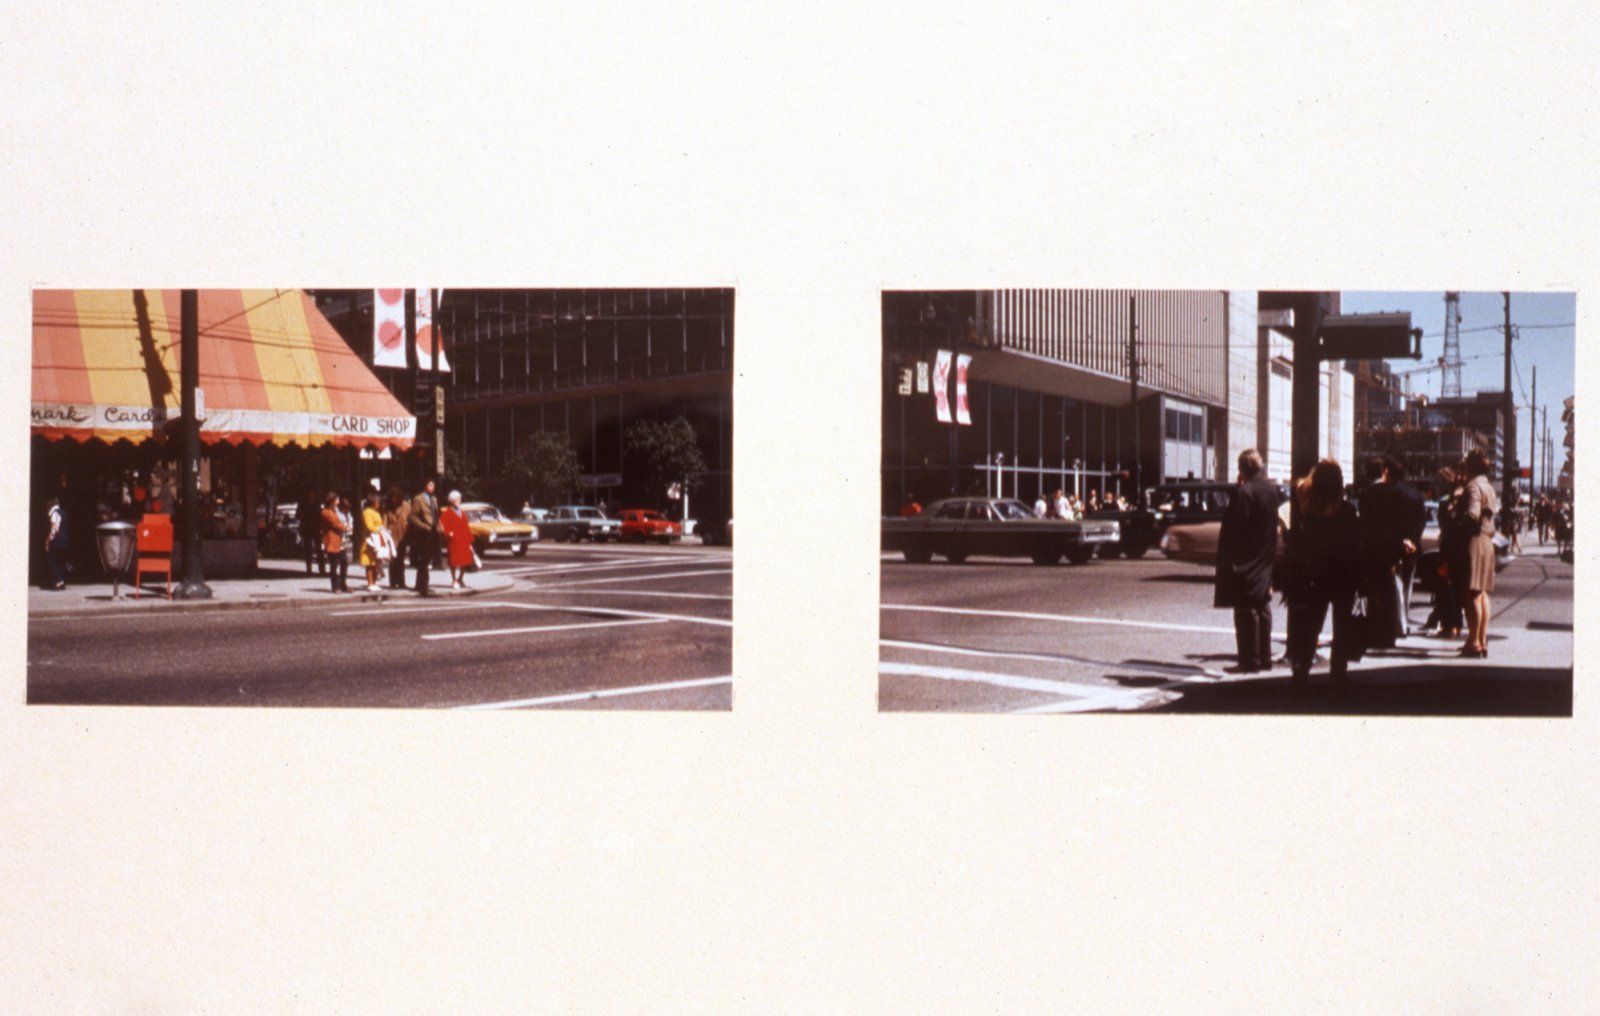 Ian Wallace, Untitled, 1969–1995, 2 cibachromes mounted on paper, 5 x 8 in. (13 x 19 cm)